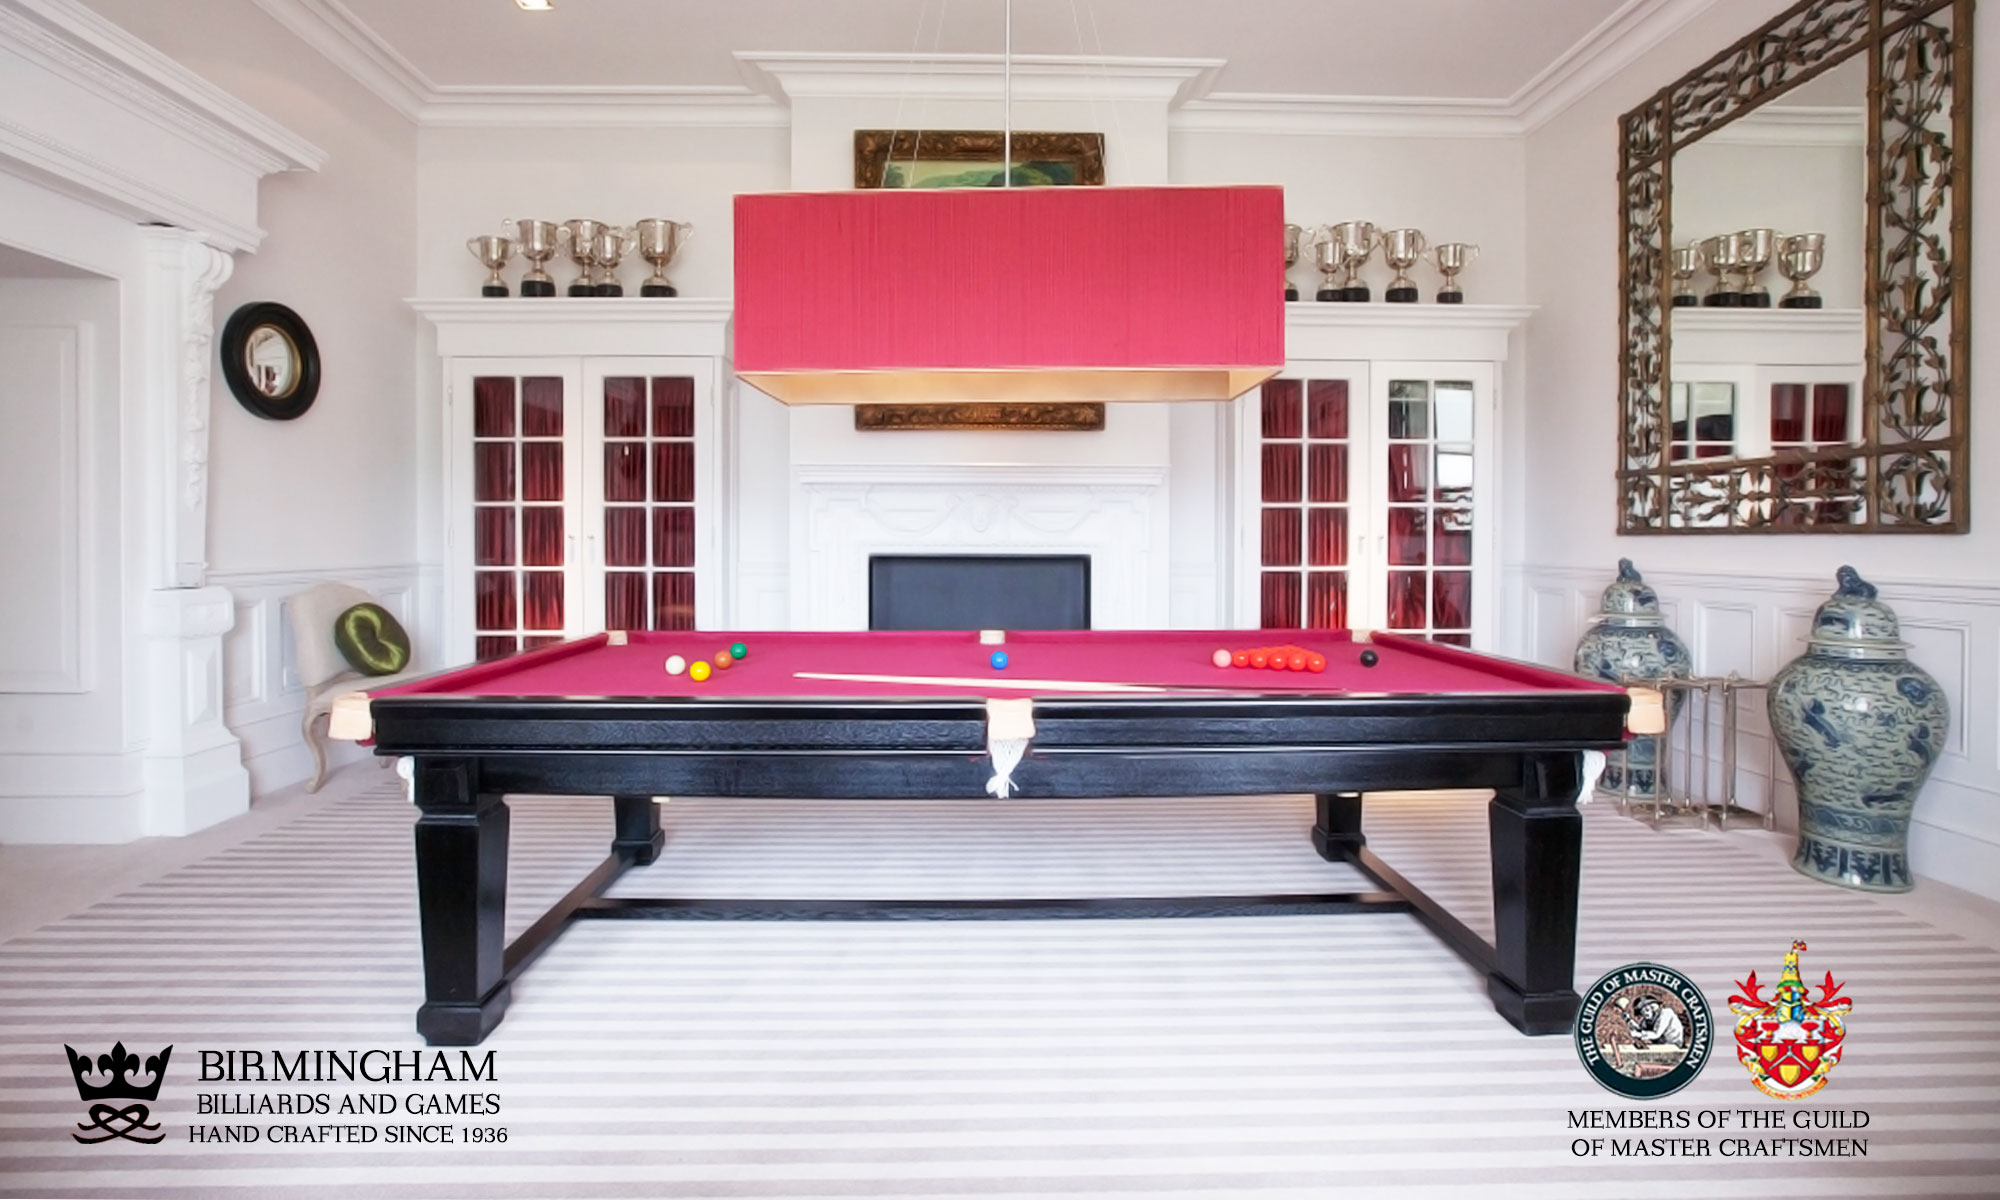 Liberty Pool and snooker dining table